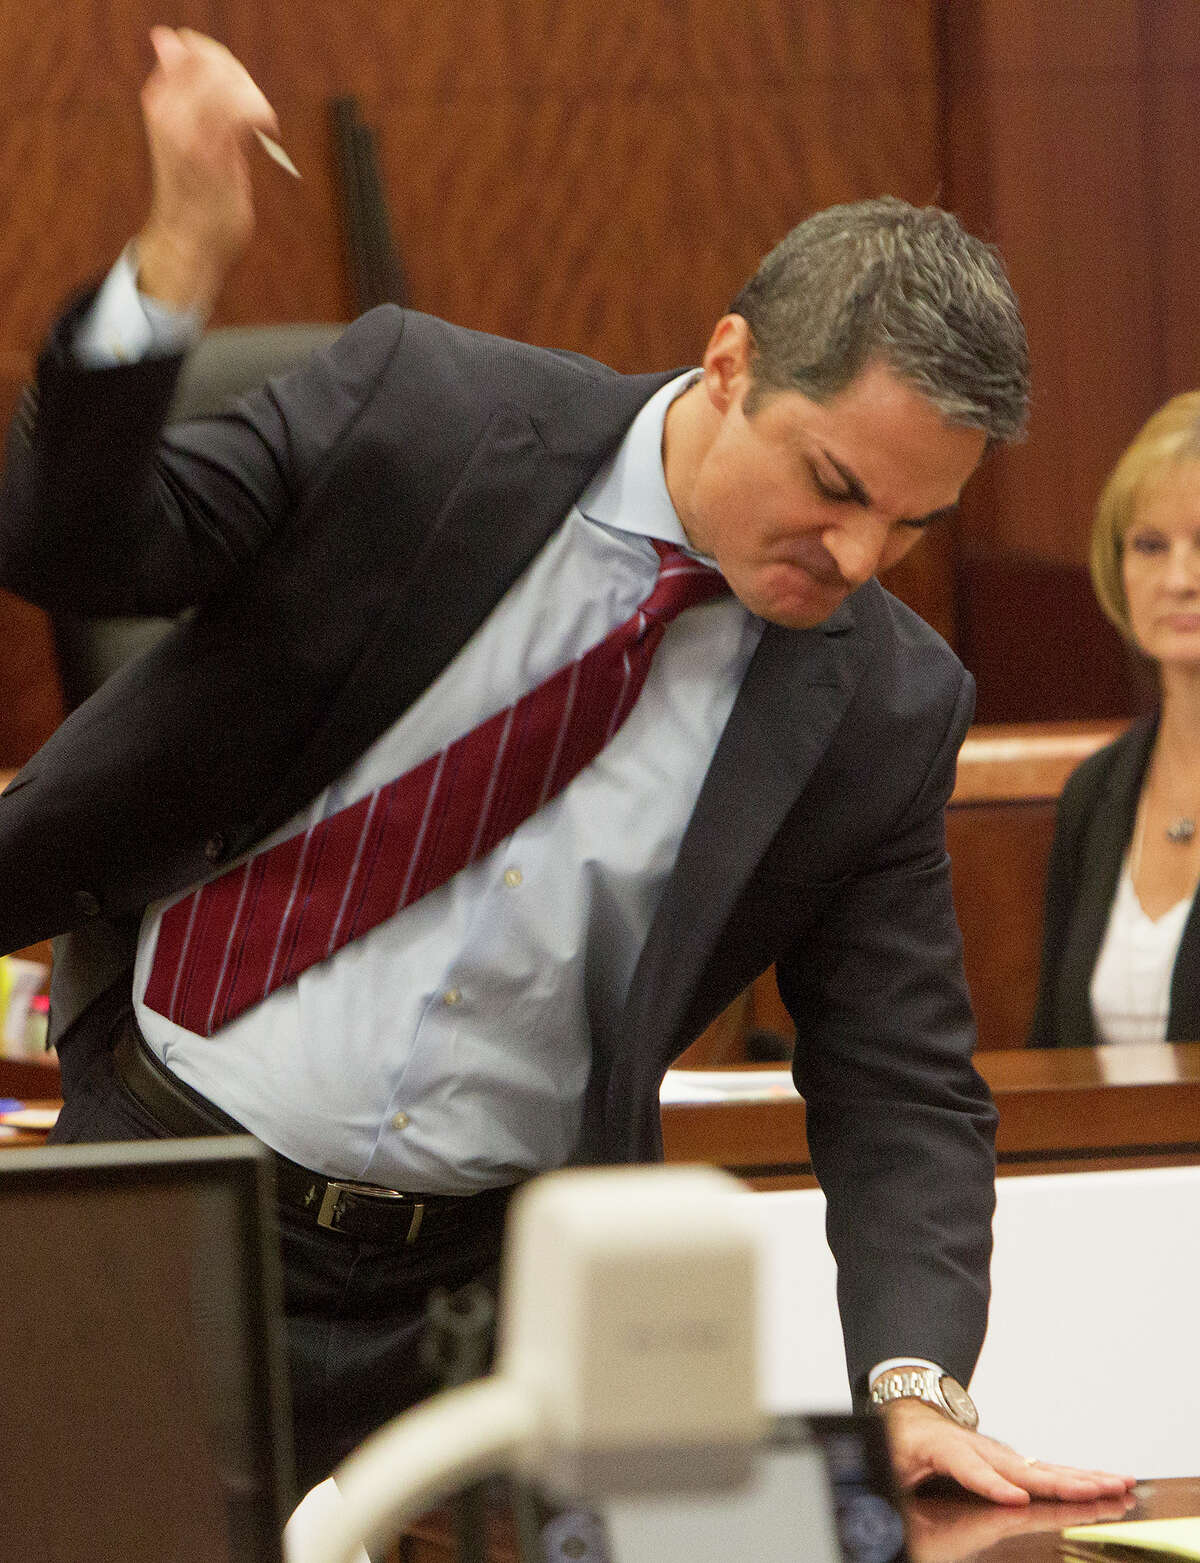 Prosecutor John Jordan uses a screwdriver to re-enact the slaying of Corriann Cervantes during closing arguments in the capital murder trial of Jose Reyes.